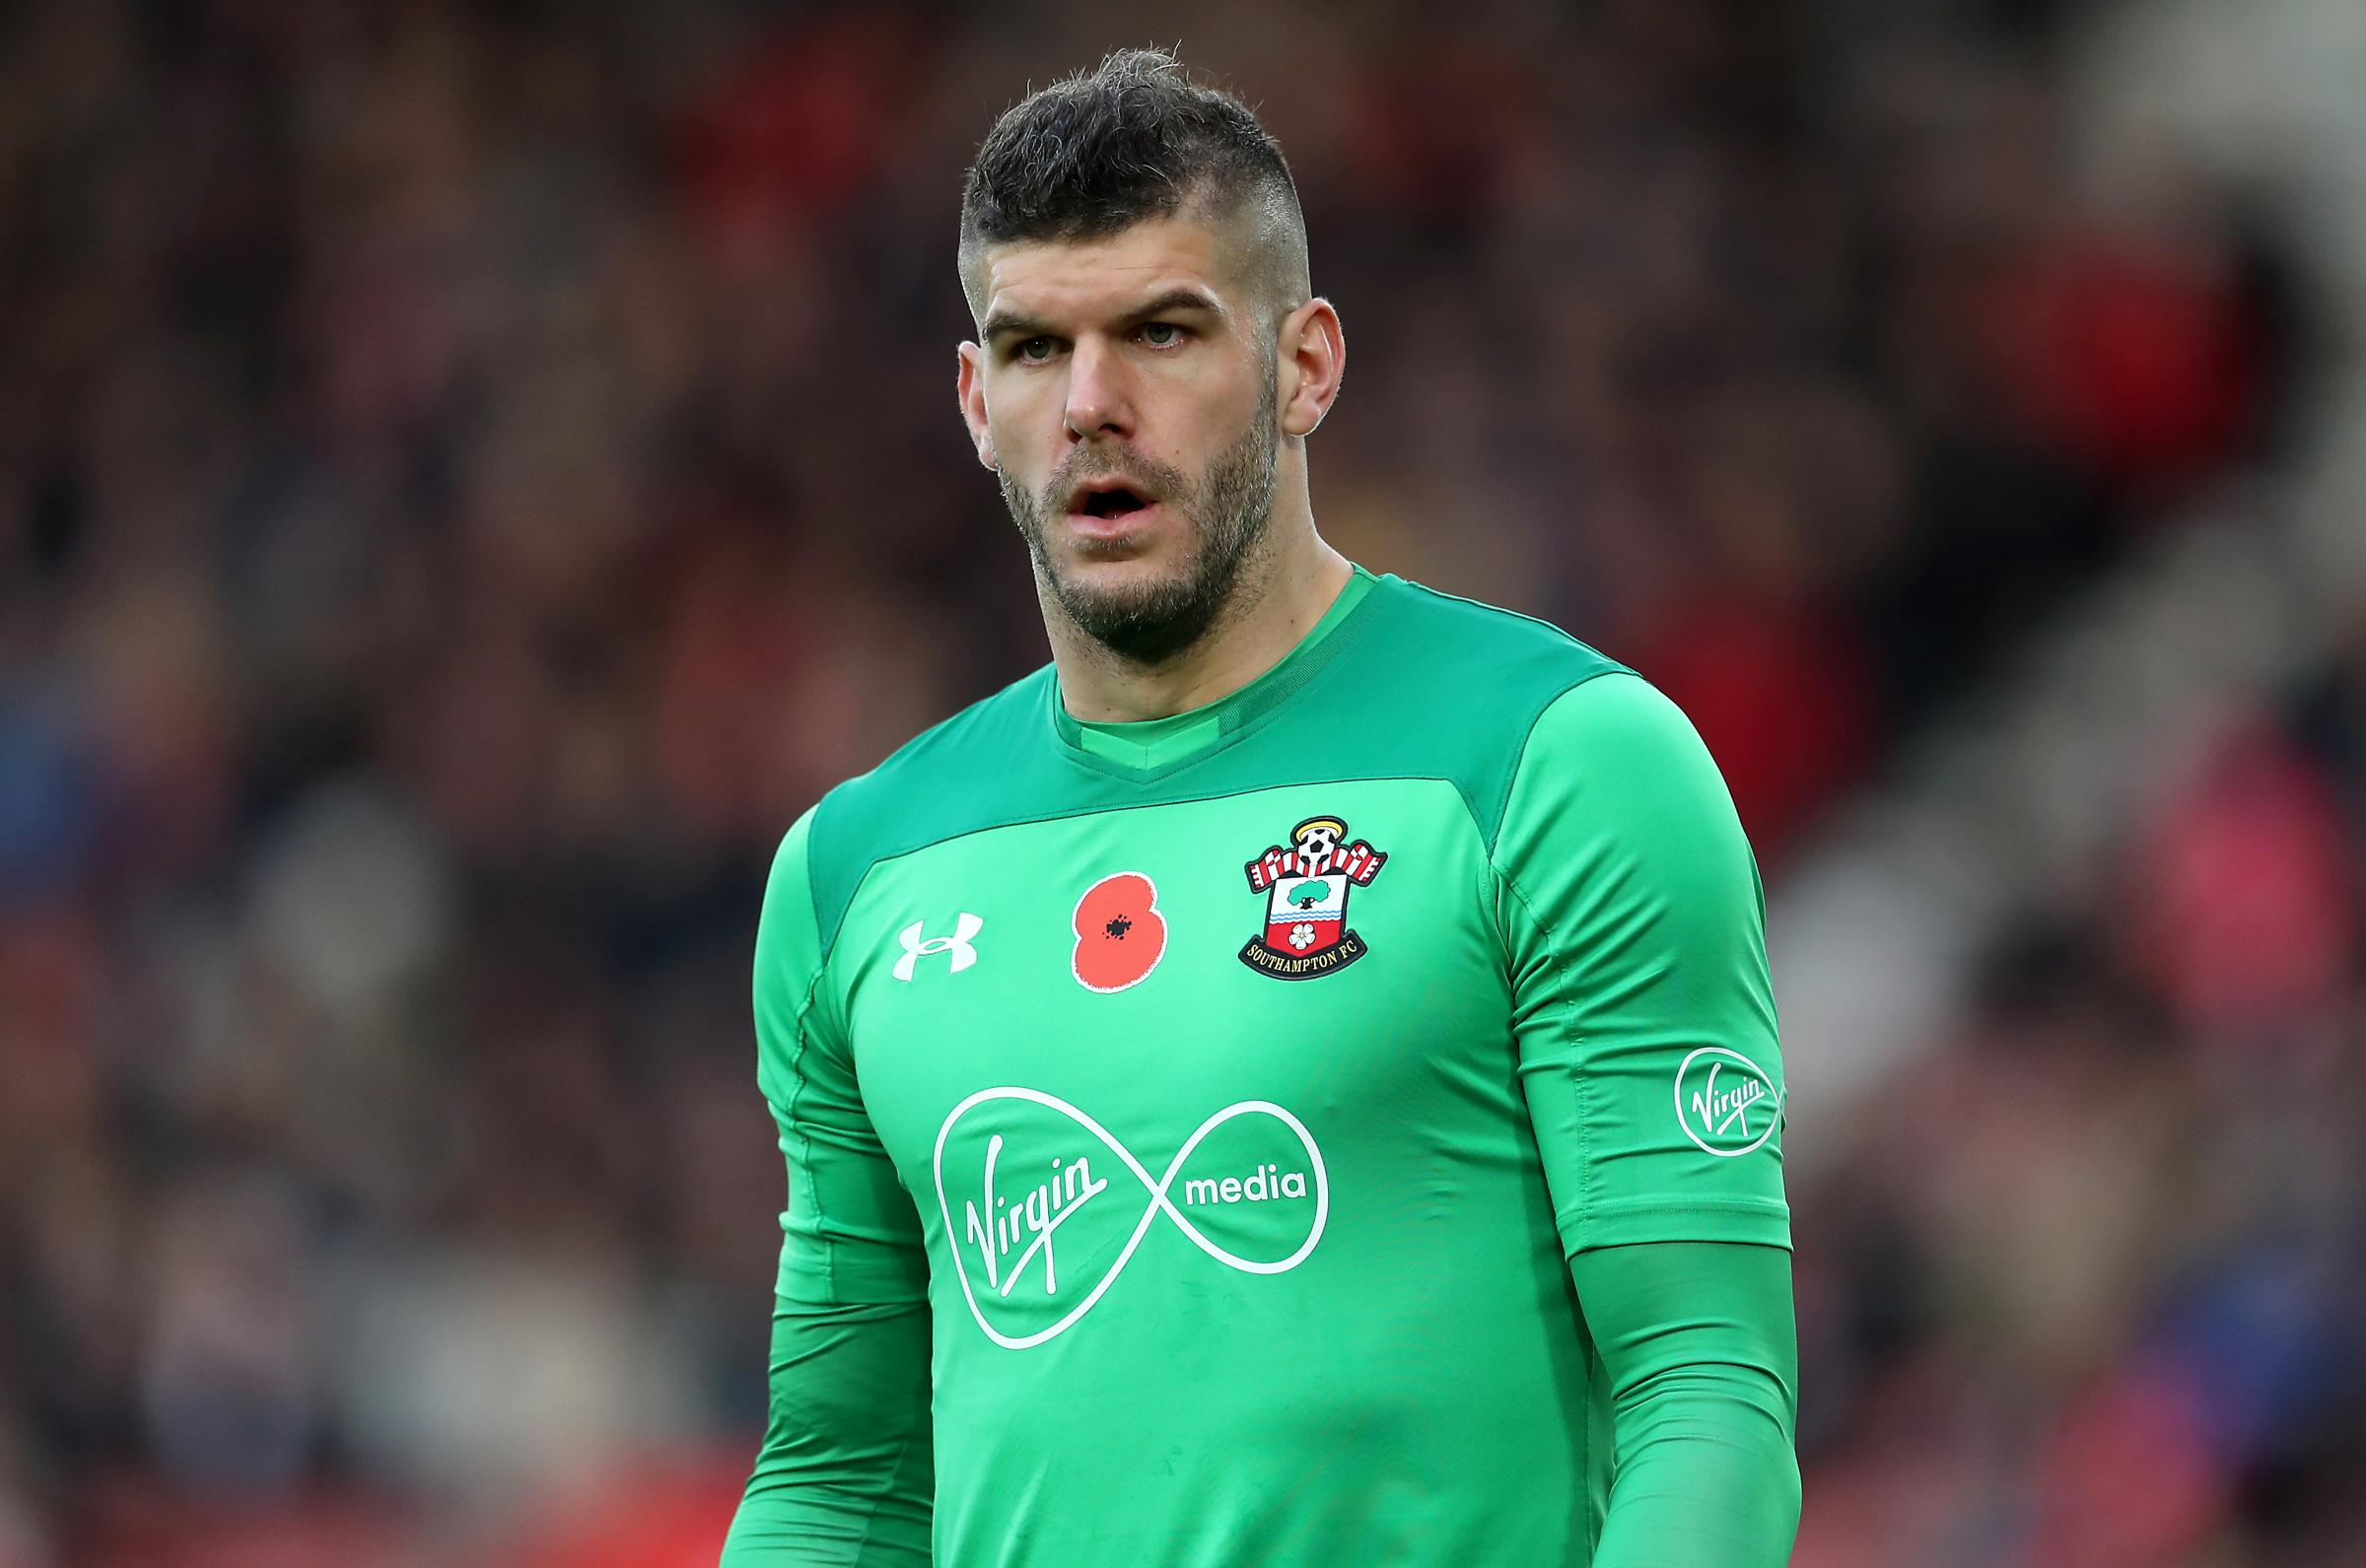 Forster running out of time and options